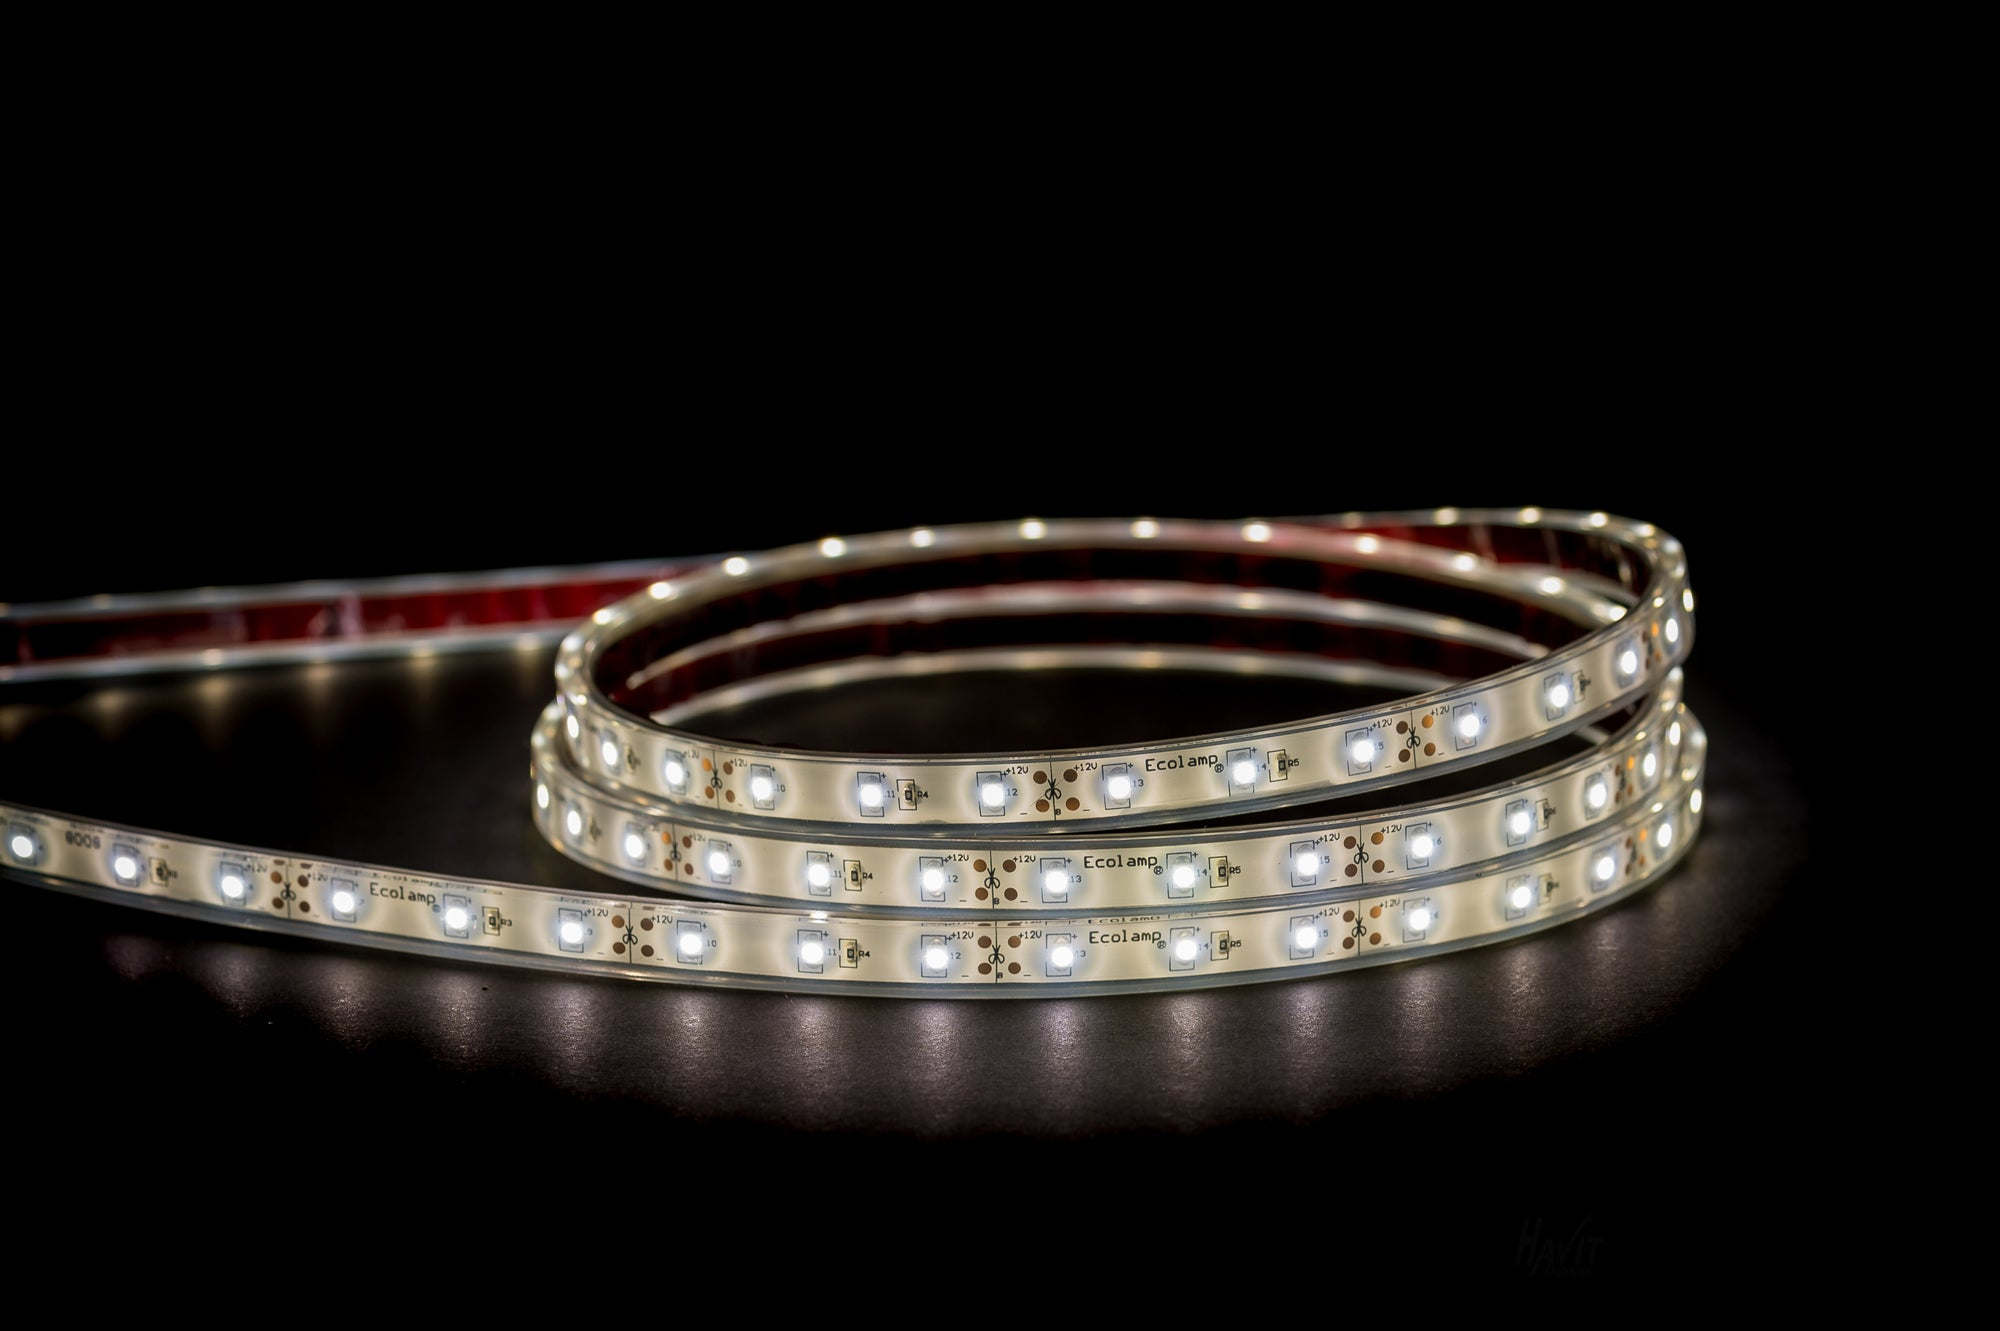 HV9723-IP67-60-4K - 4.8w 12v DC IP67 LED Strip 4000k